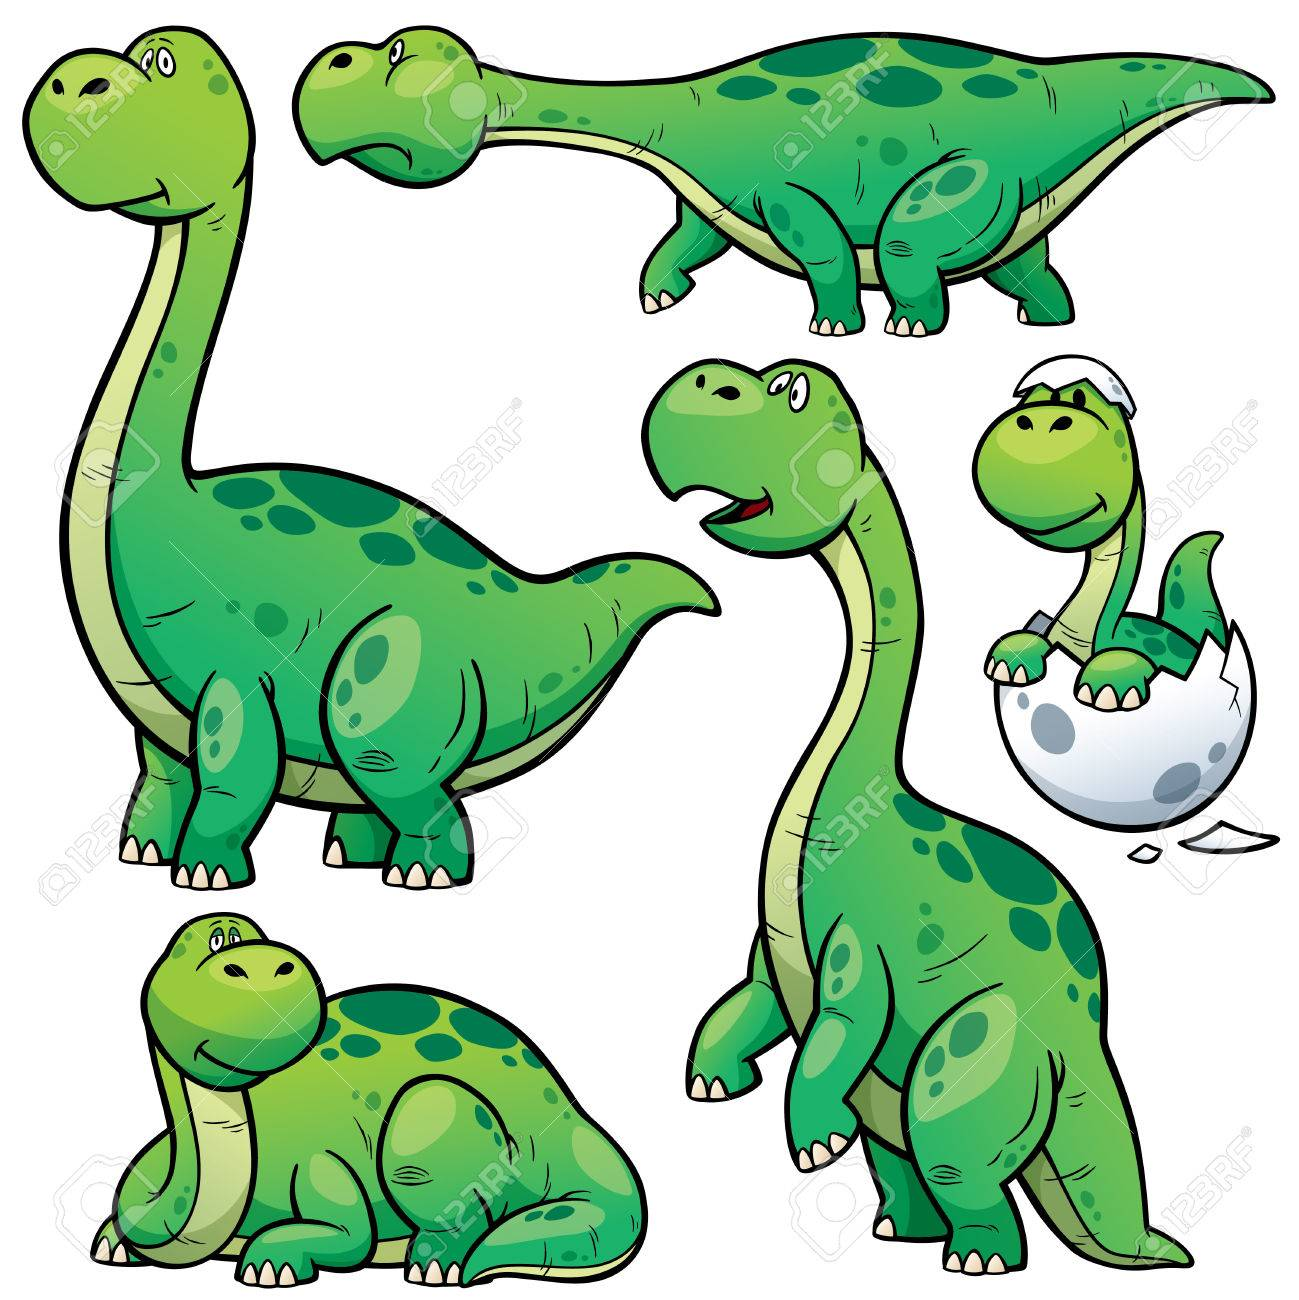 vector illustration of dinosaurs cartoon character set royalty free